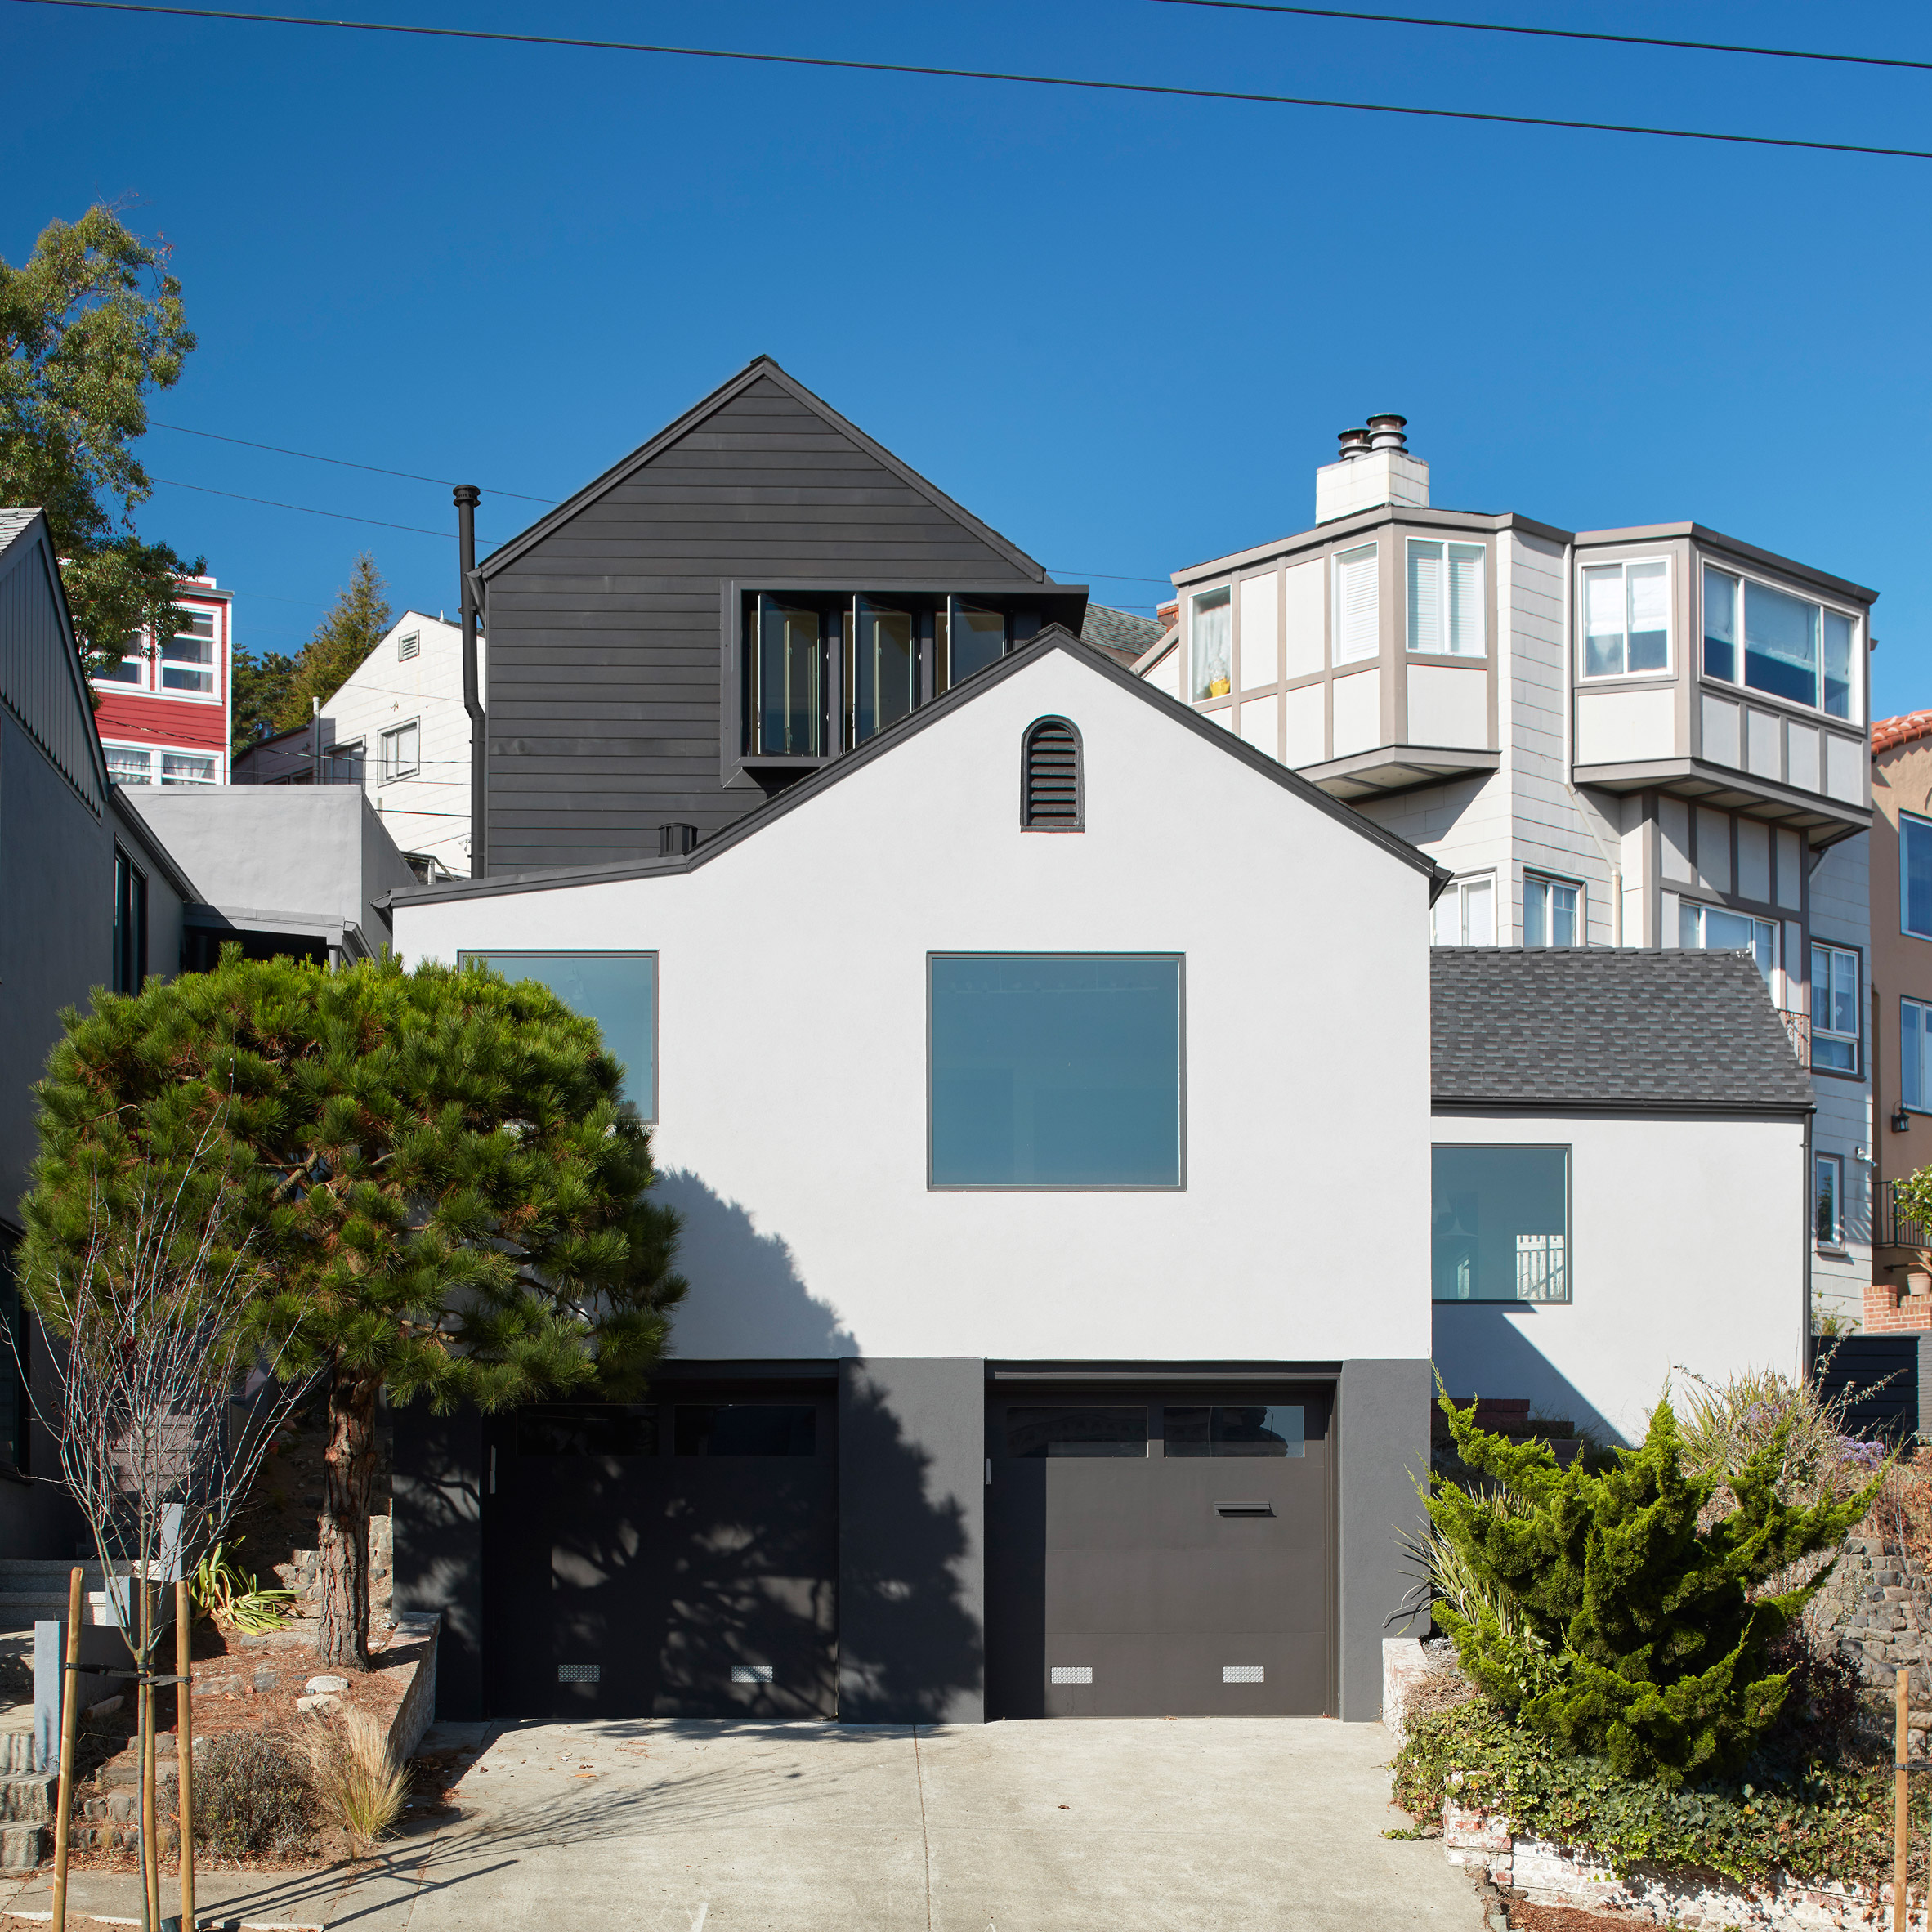 SAW inserts variation of old San Francisco home into its roof